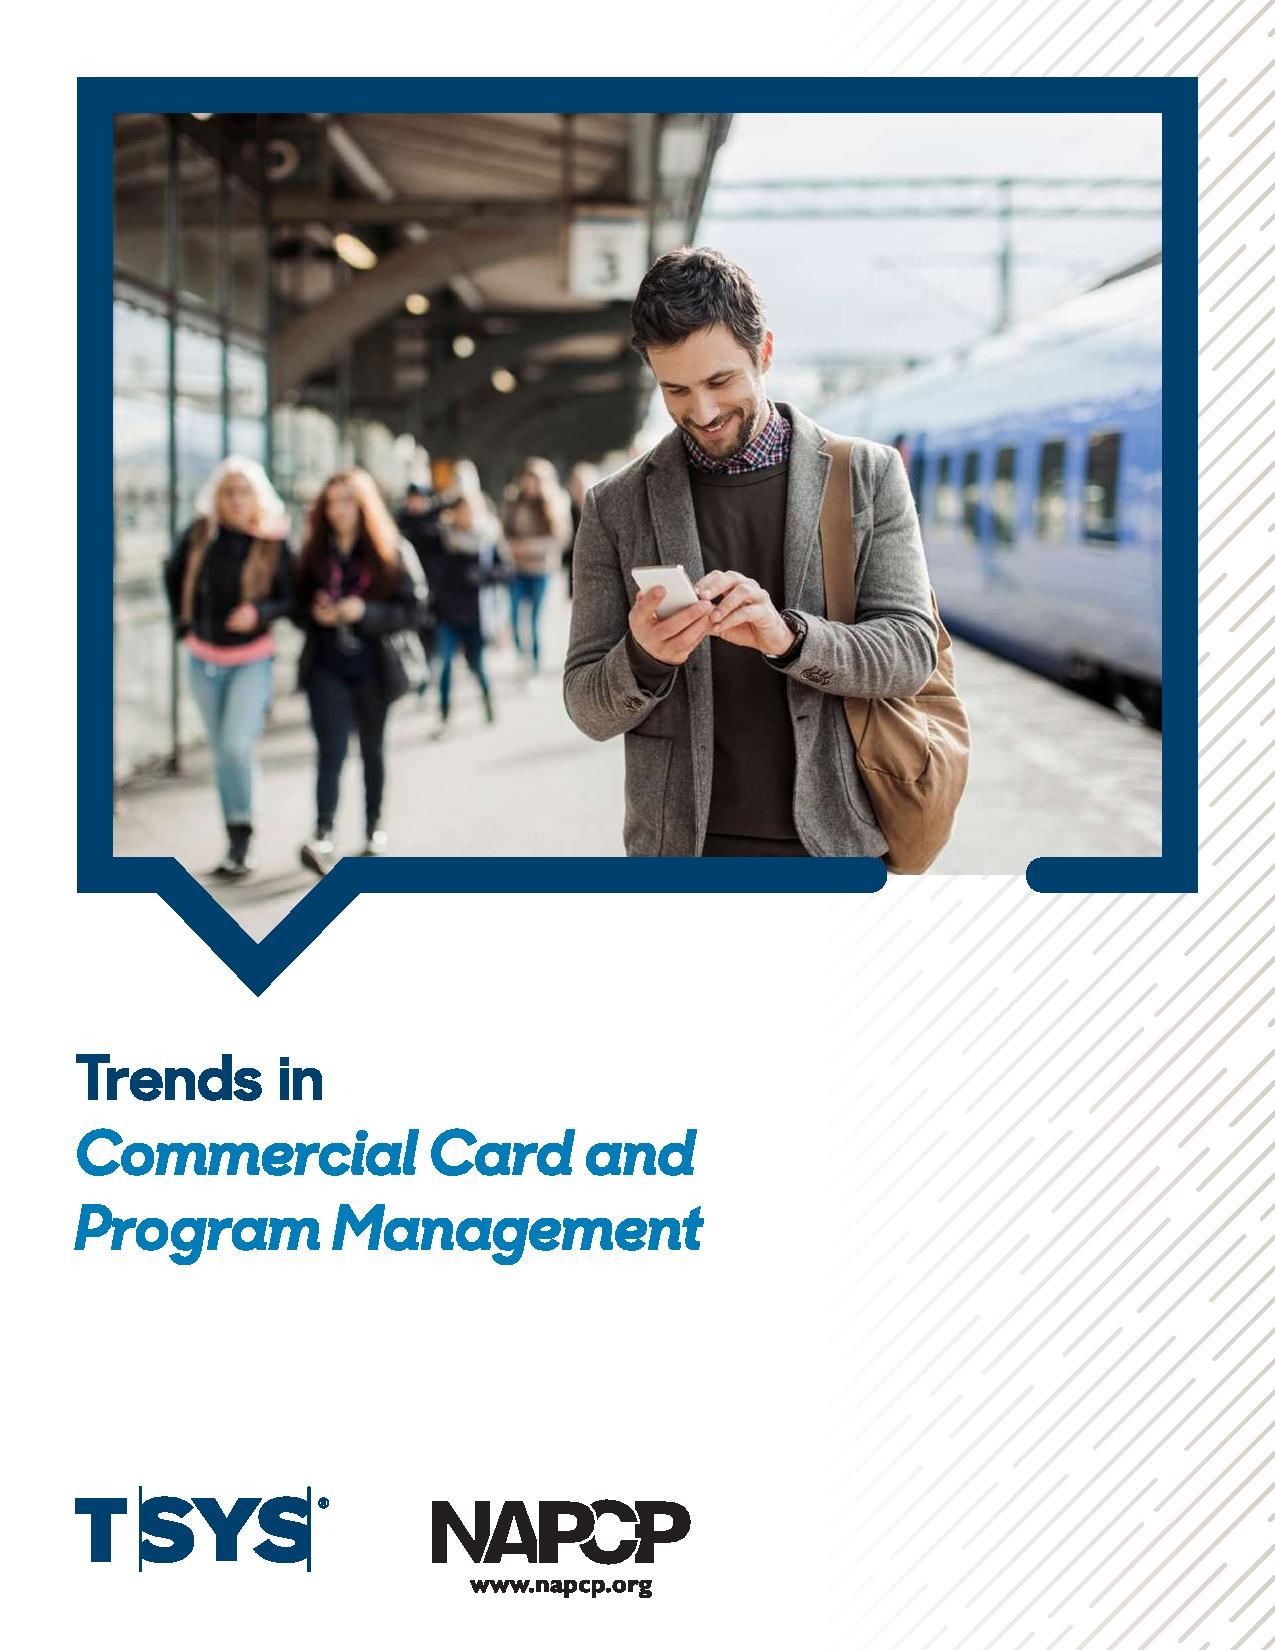 Napcp And Tsys Survey Results Identify Overall Commercial Card